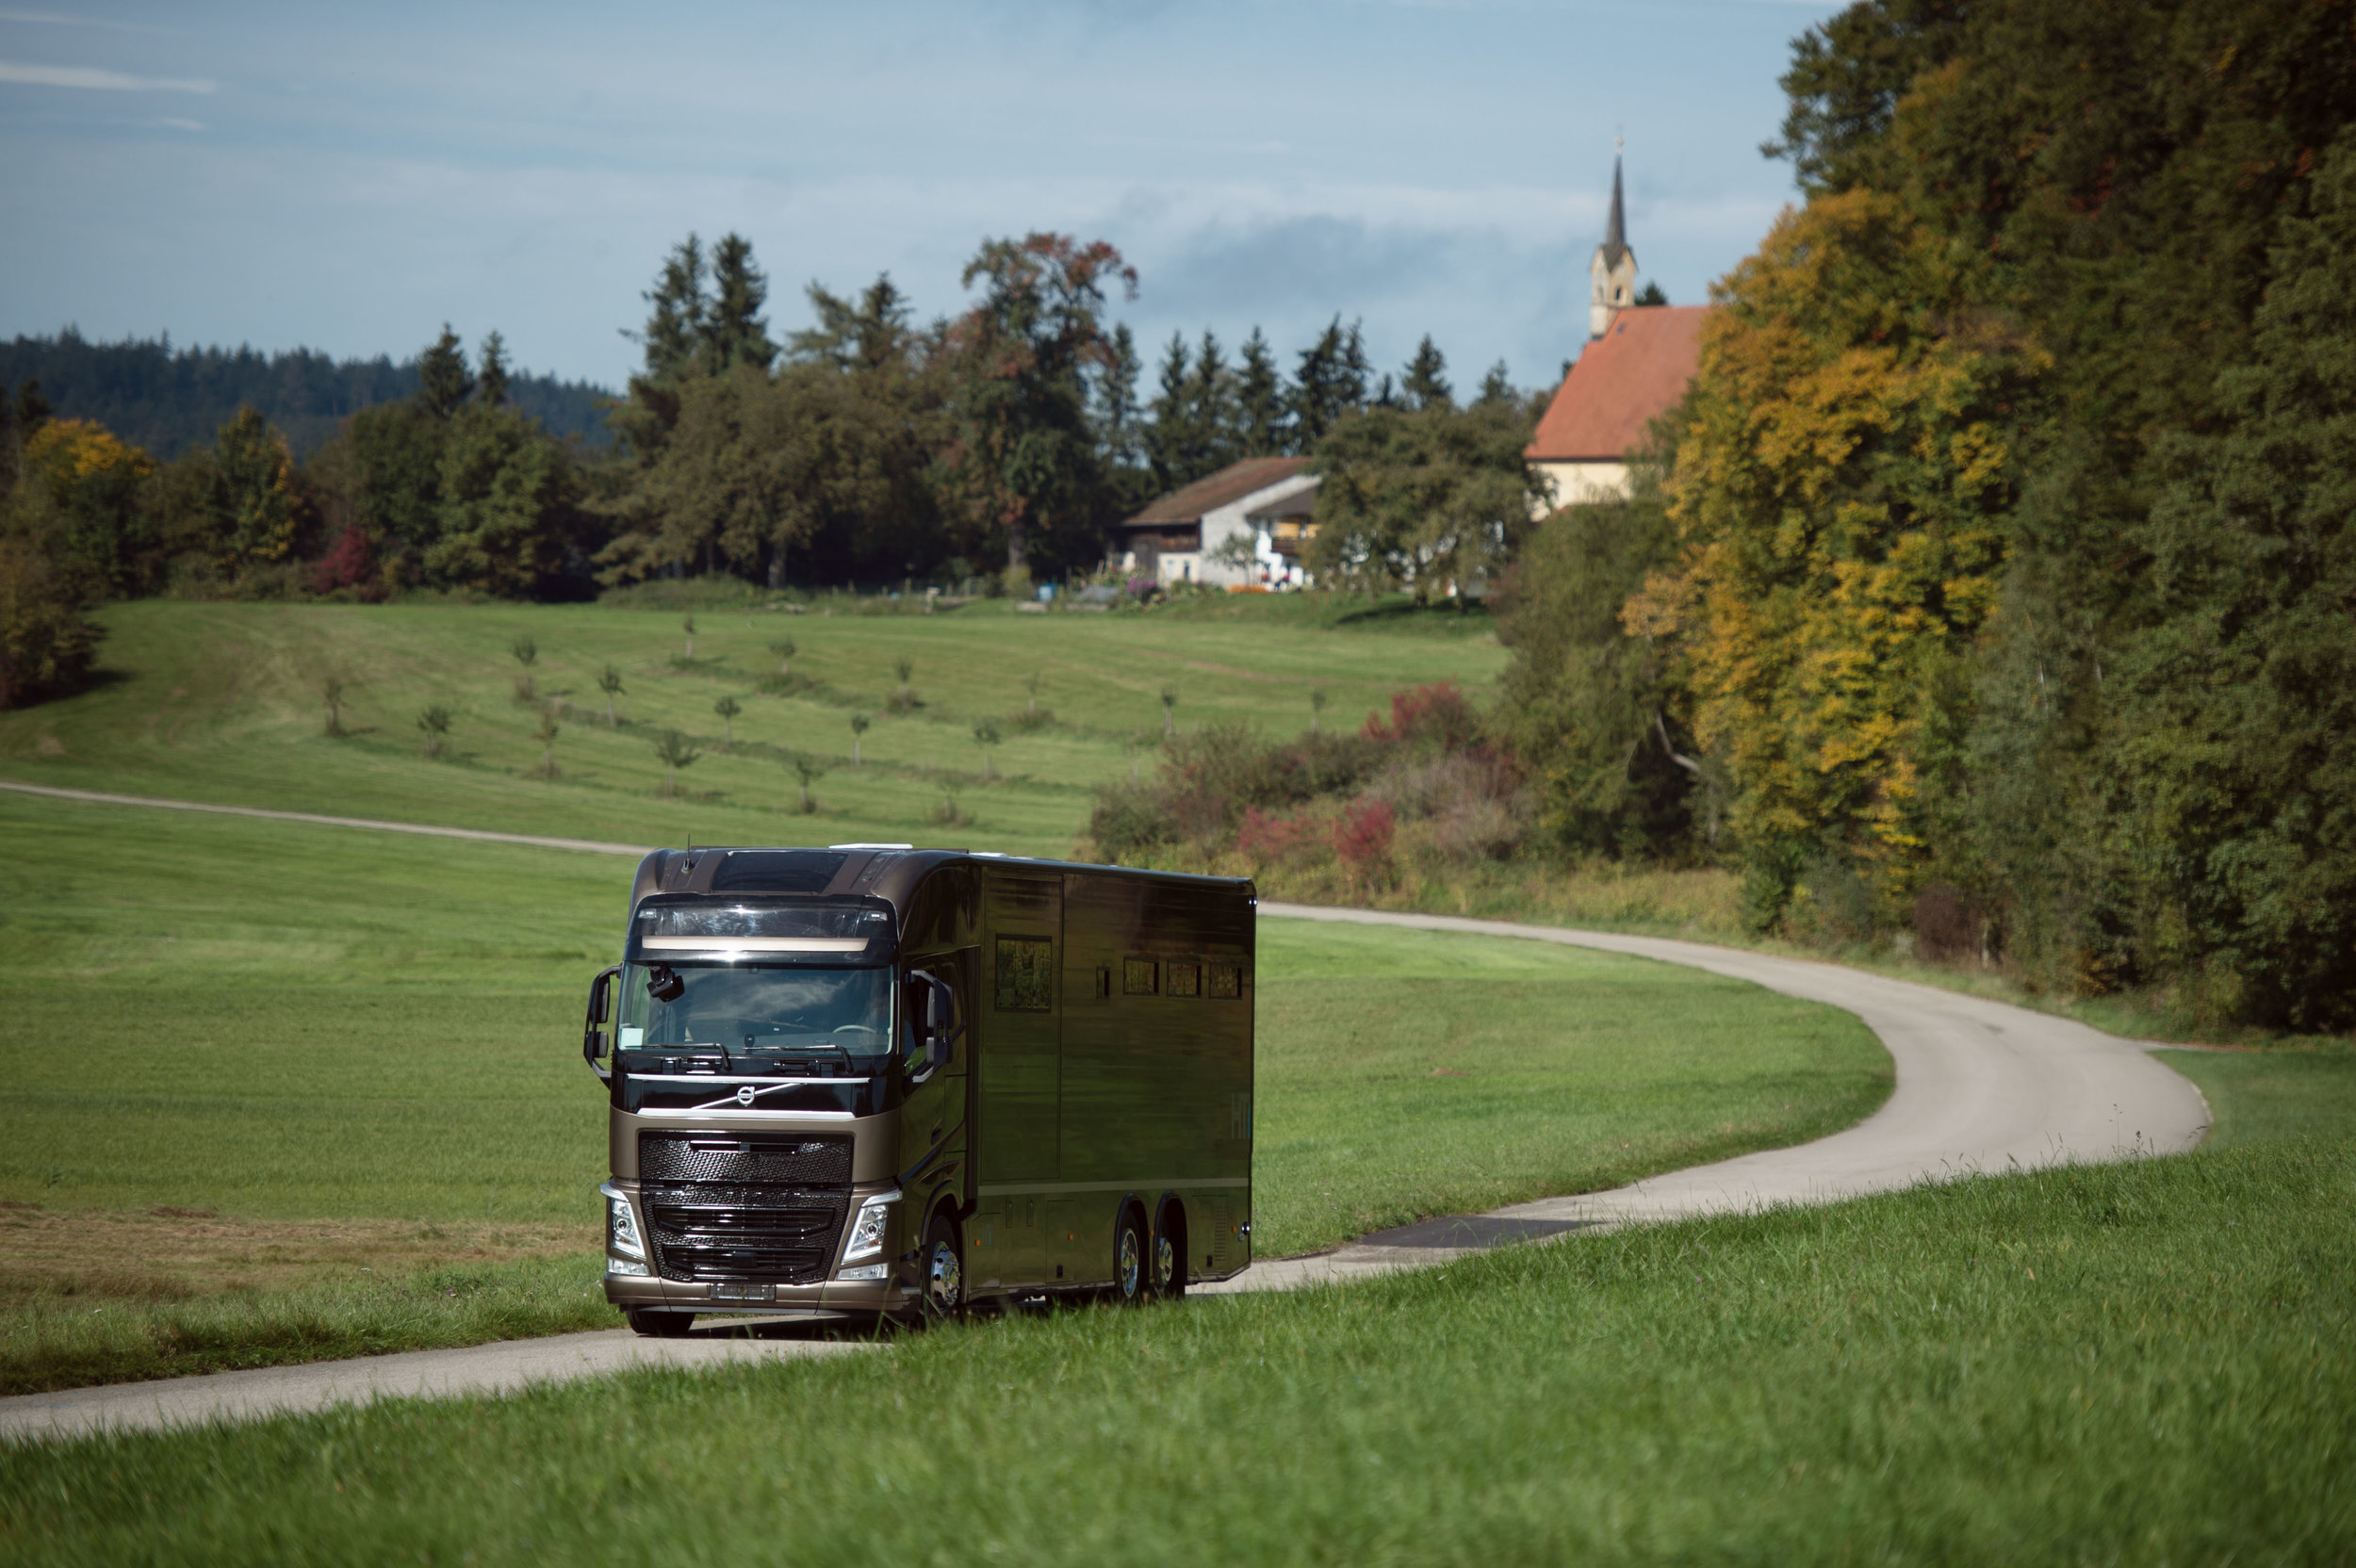 Horse Truck Pop out Volvo Aniko Towers Photo Oct17-162.jpg